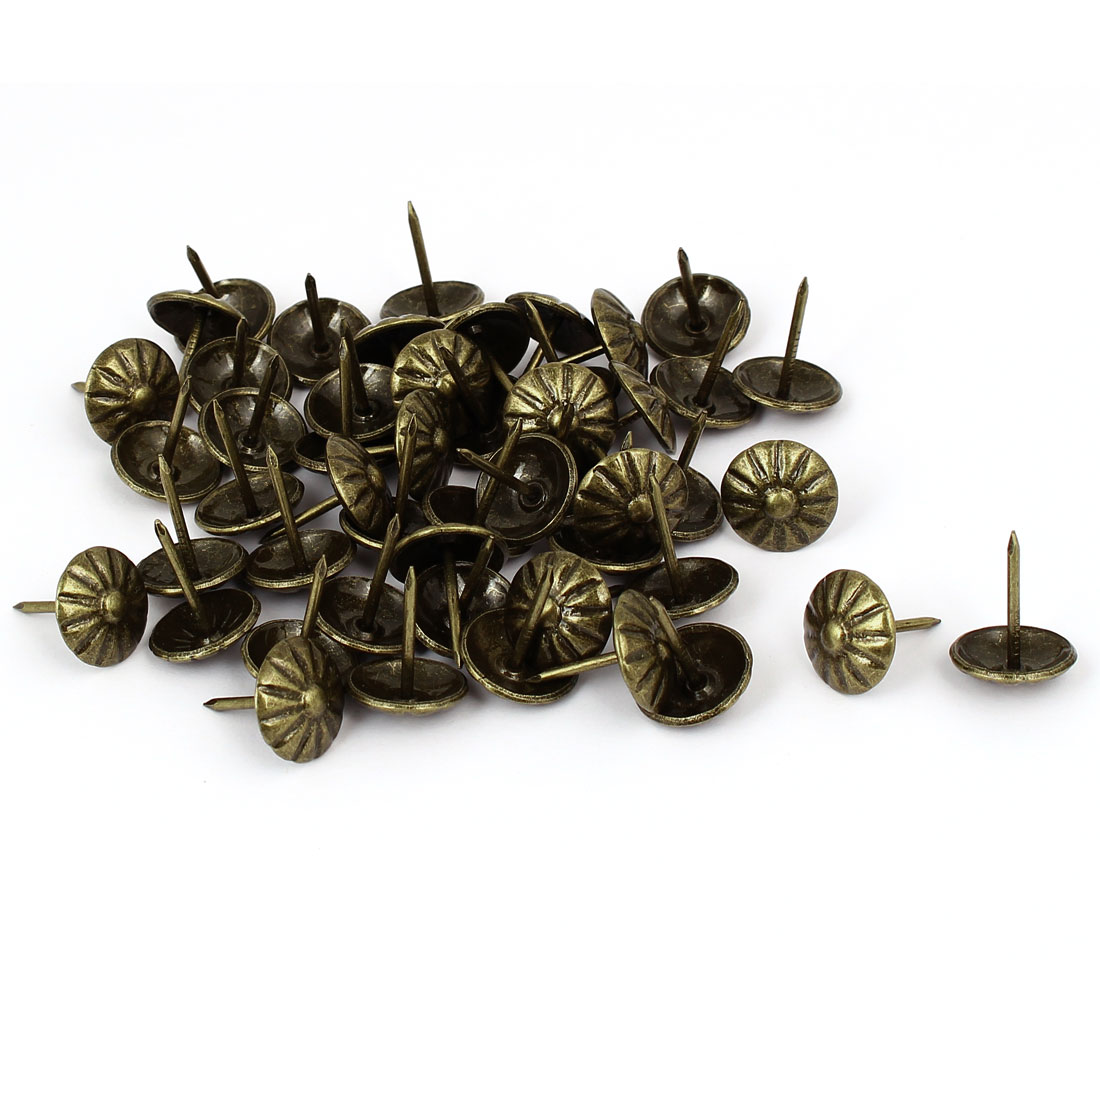 Home Metal Round Head Upholstery Tack Push Nail Bronze Tone 16mm Dia 50pcs